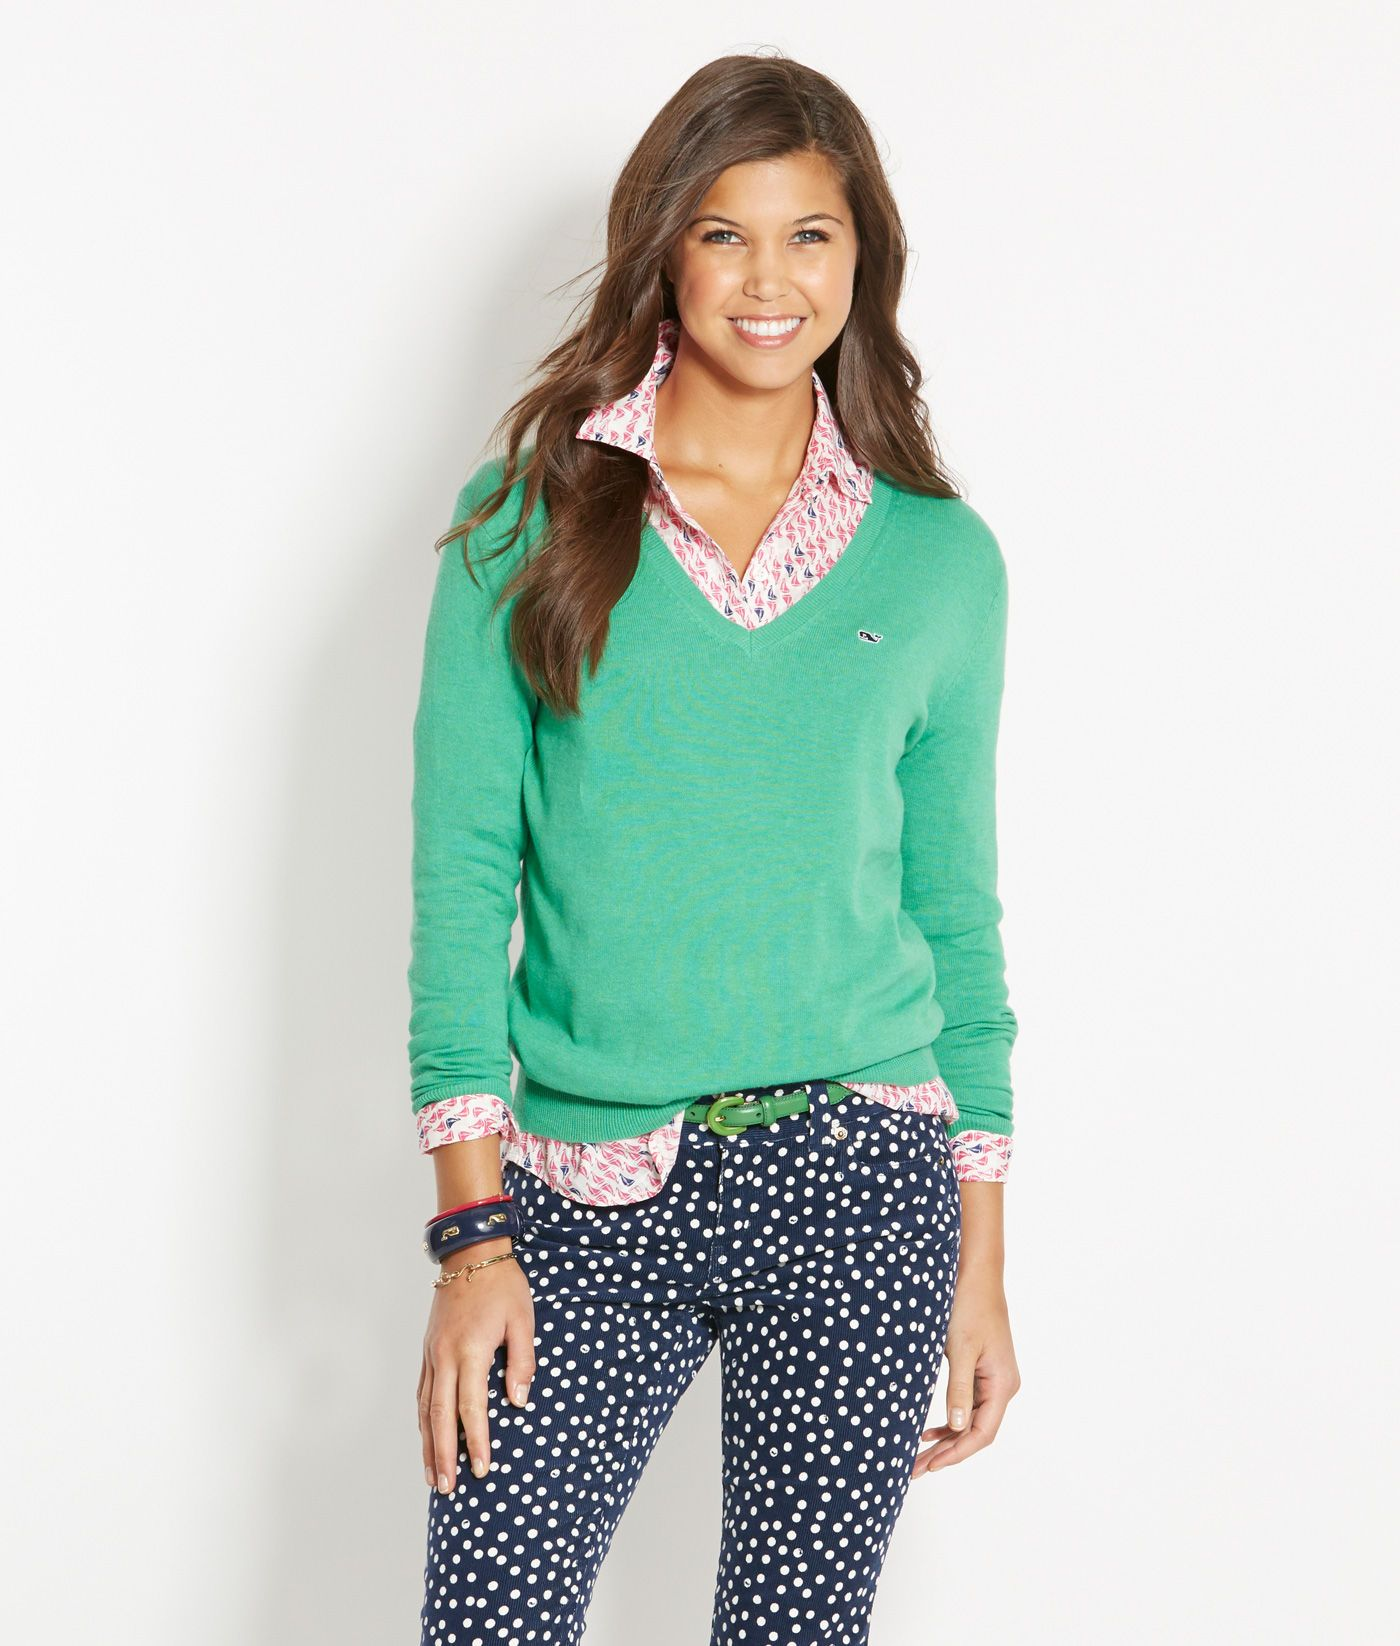 Shop Sweaters: Candlewood V-Neck Sweater for Women | Vineyard ...